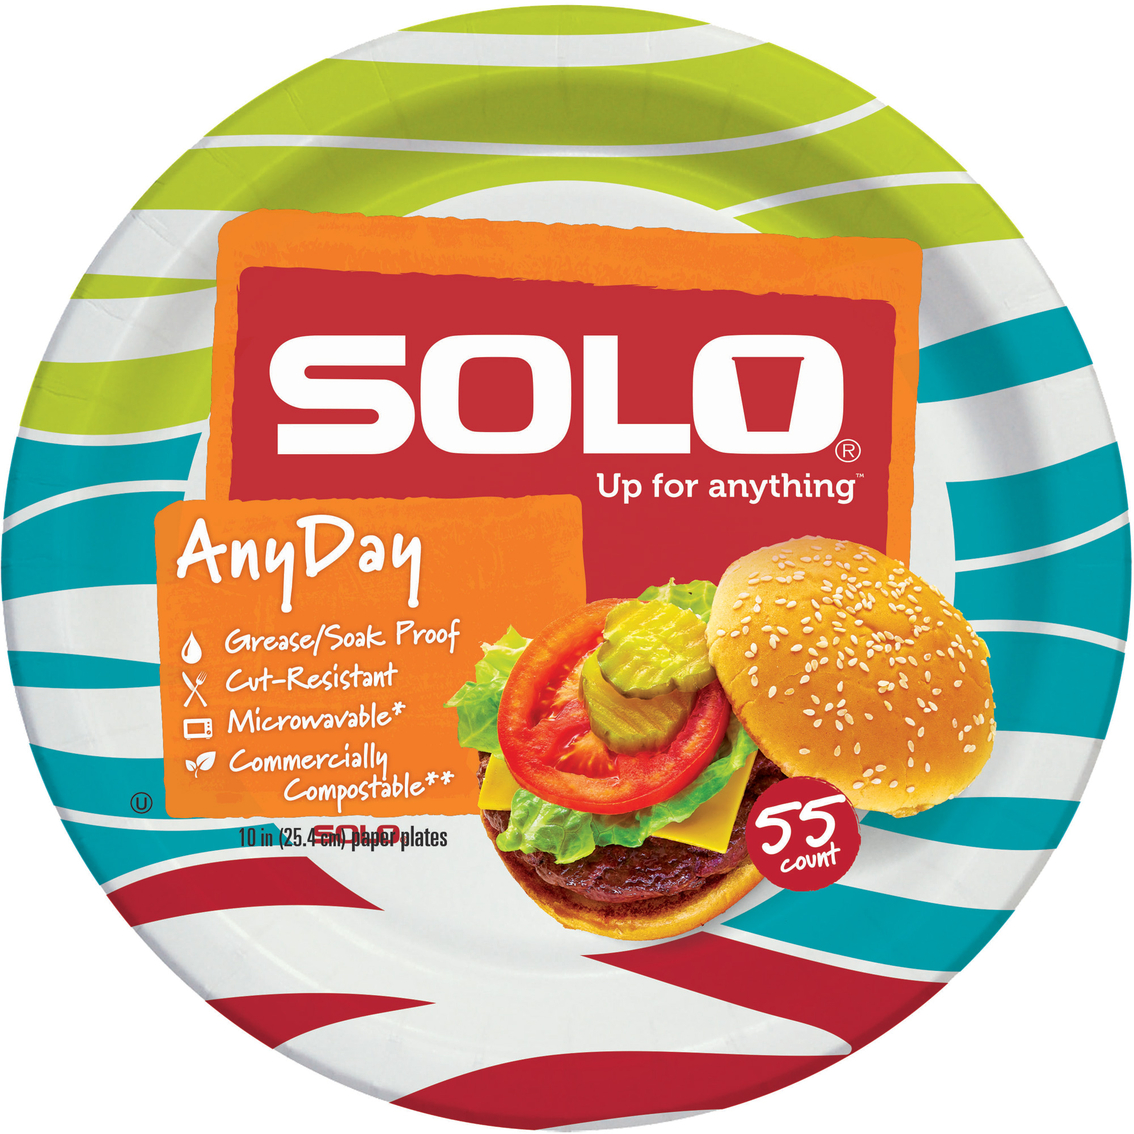 Heavy Duty Paper Plates 55 Pk.  sc 1 st  ShopMyExchange.com & Solo 10 In. Heavy Duty Paper Plates 55 Pk. | Disposable Tableware ...